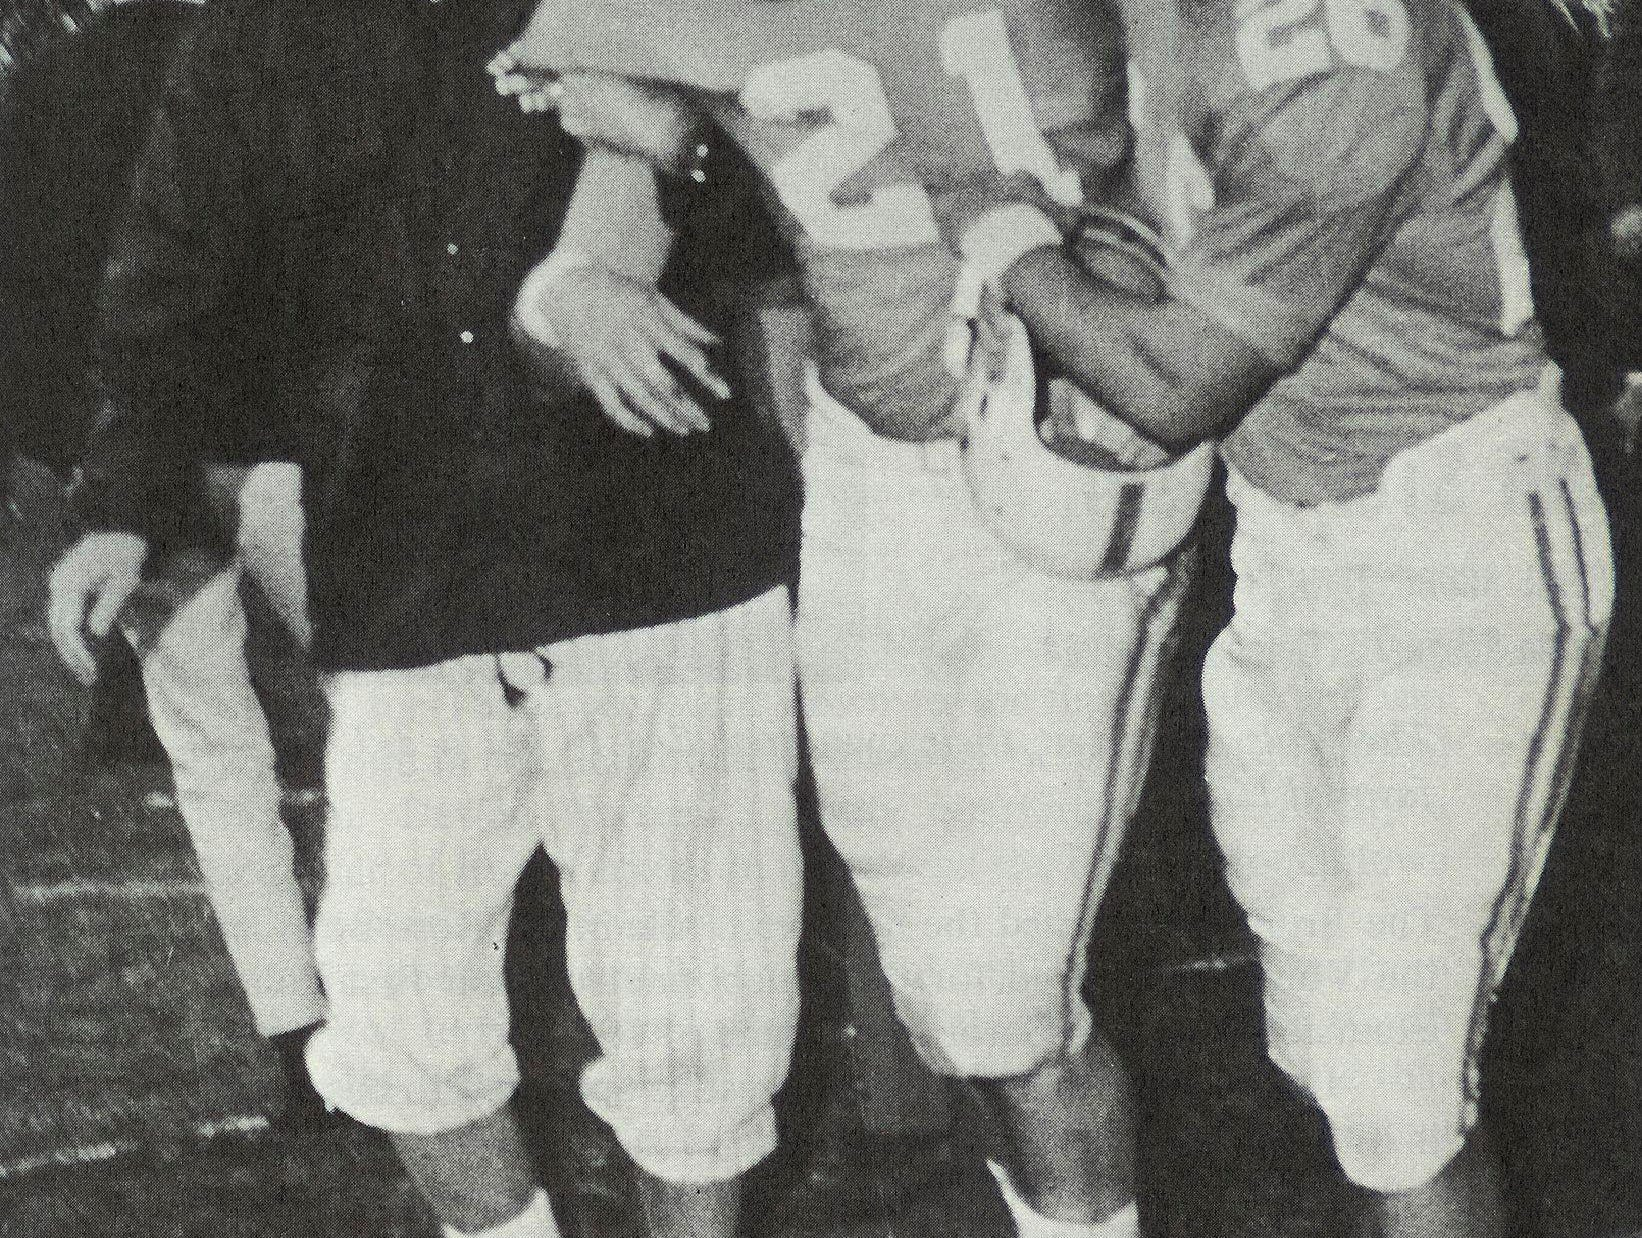 Trainer Mickey O'Brien, left, and teammate Albert Dorsey, right, help Tennessee defensive back Bob Petrella off the field after the Vols' 37-34 win over UCLA on Dec. 4, 1965, in Memphis. Petrella had the game-clinching interception off Bruin quarterback Gary Beban and had been flattened by Bruins fullback Paul Horgan on the UCLA sideline.